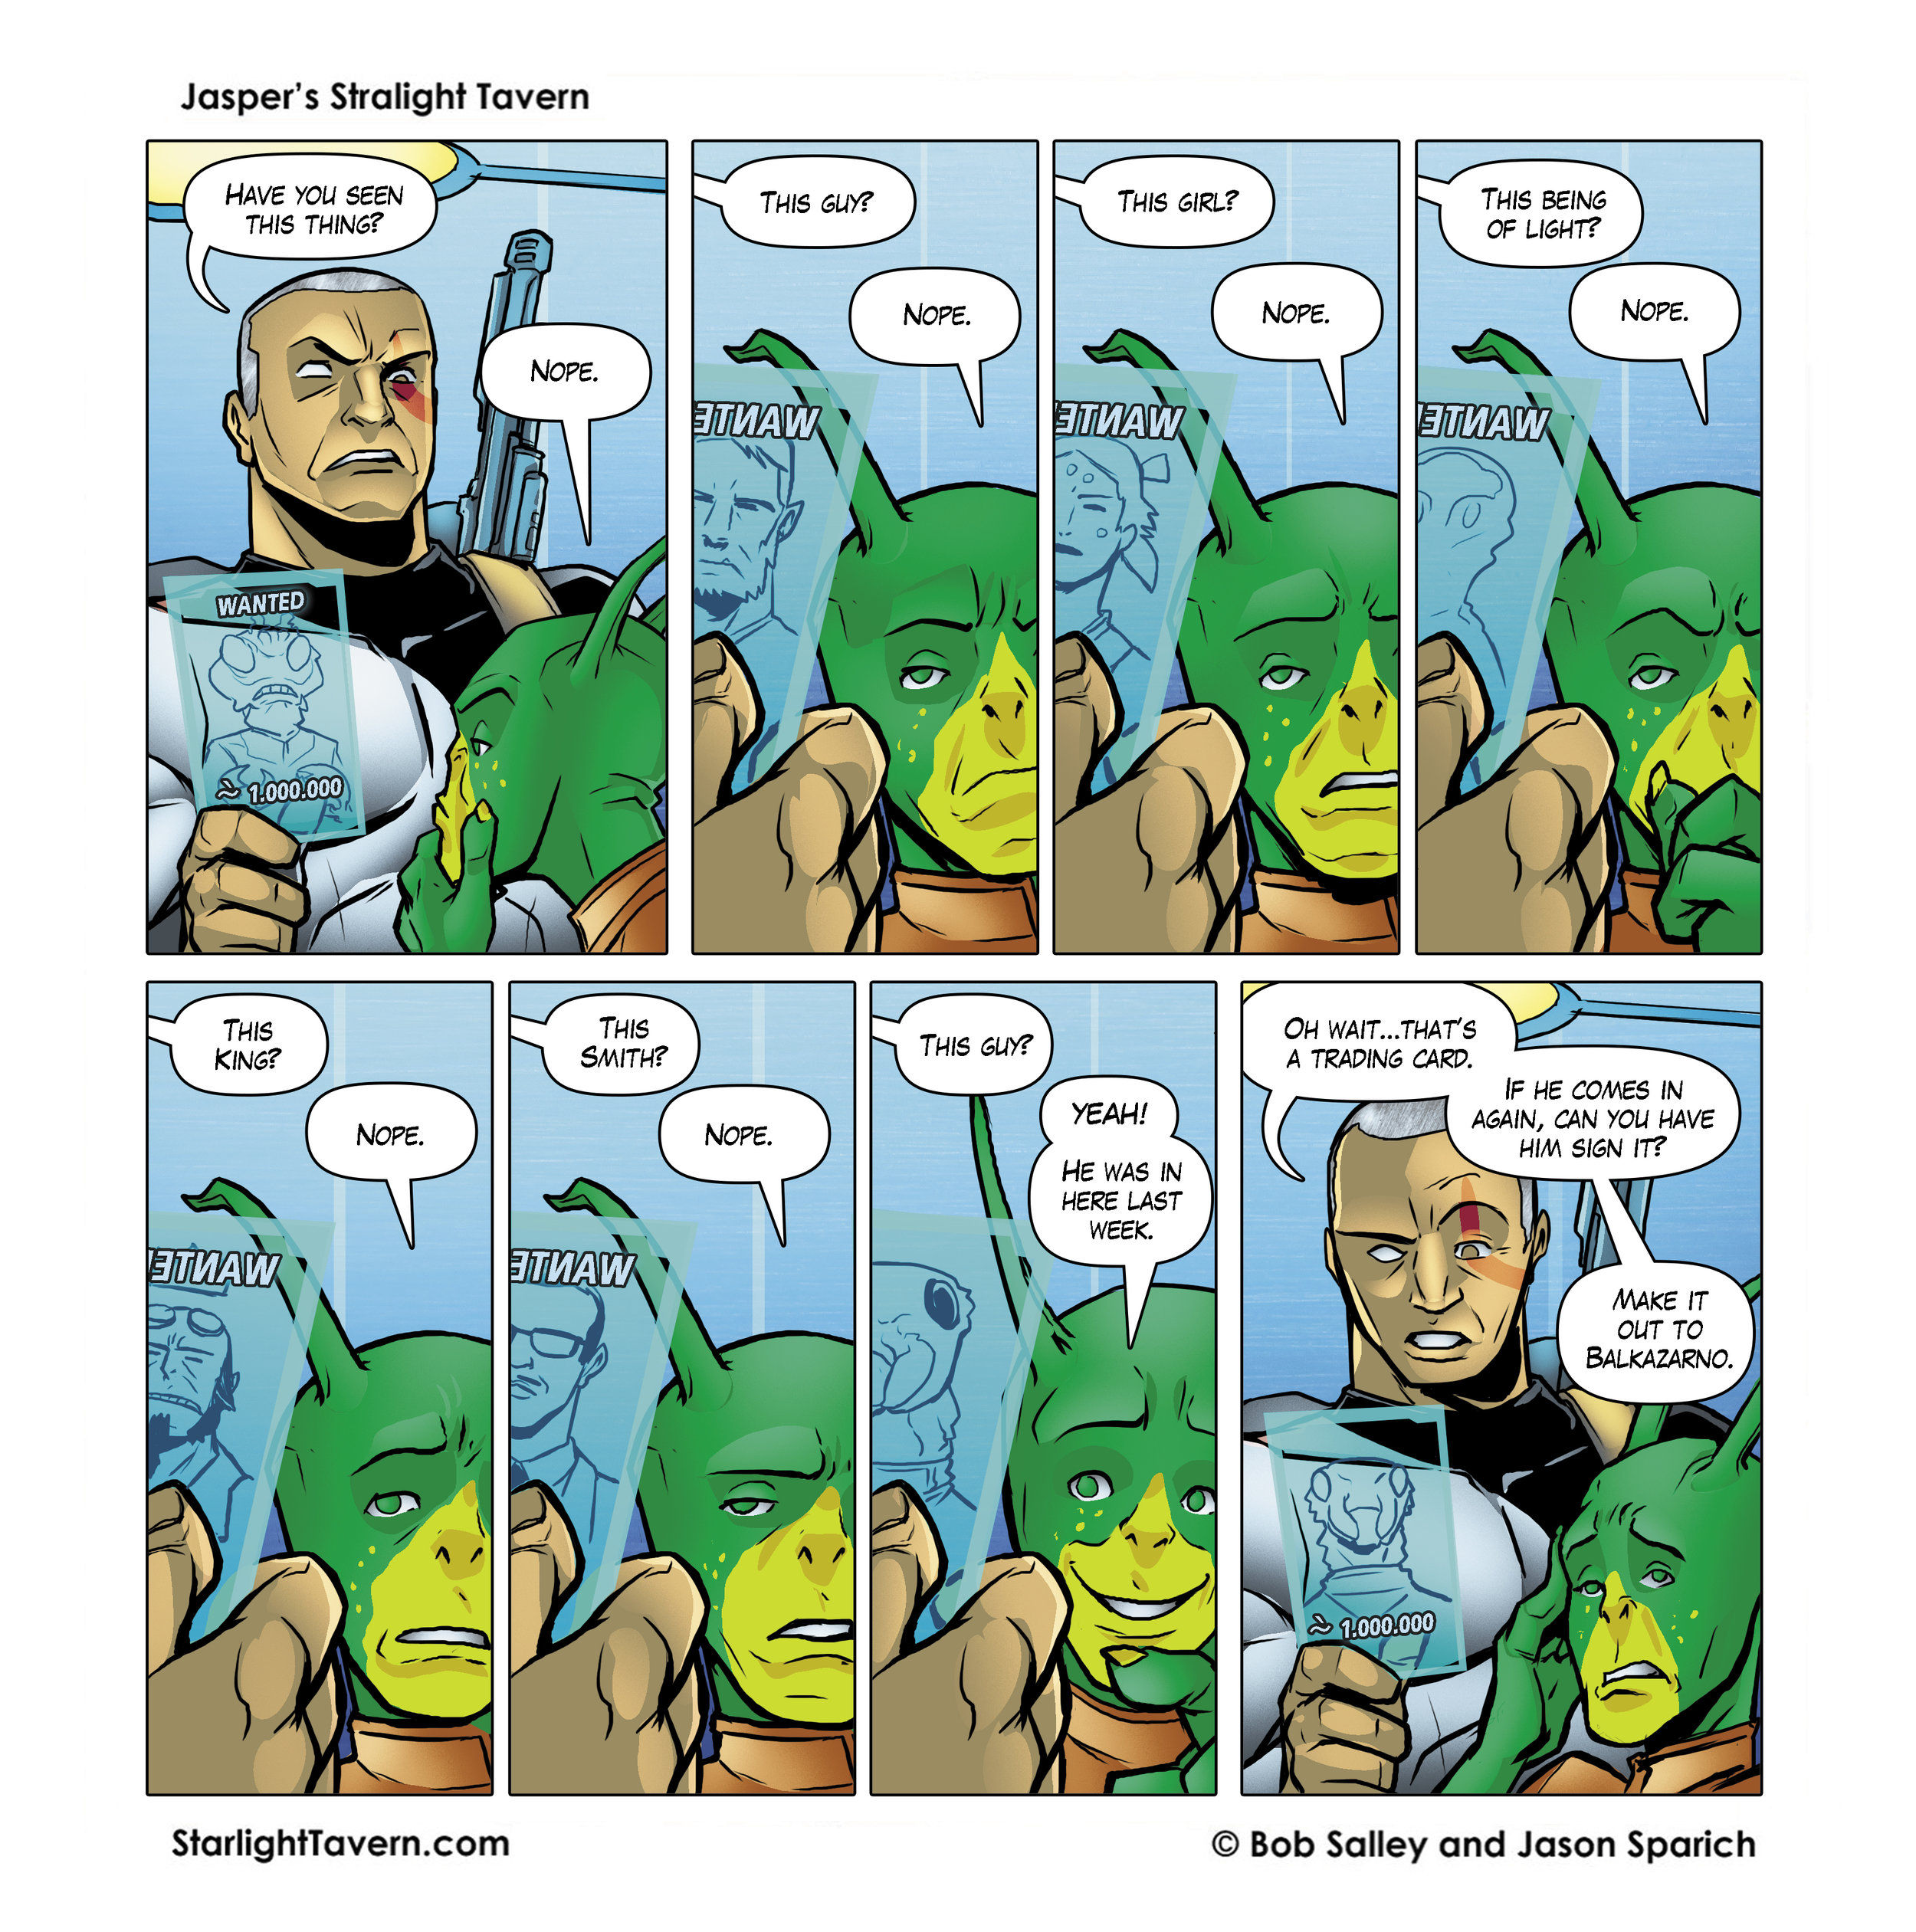 salvagers strip 39_colors_RGB_Web_use.jpg